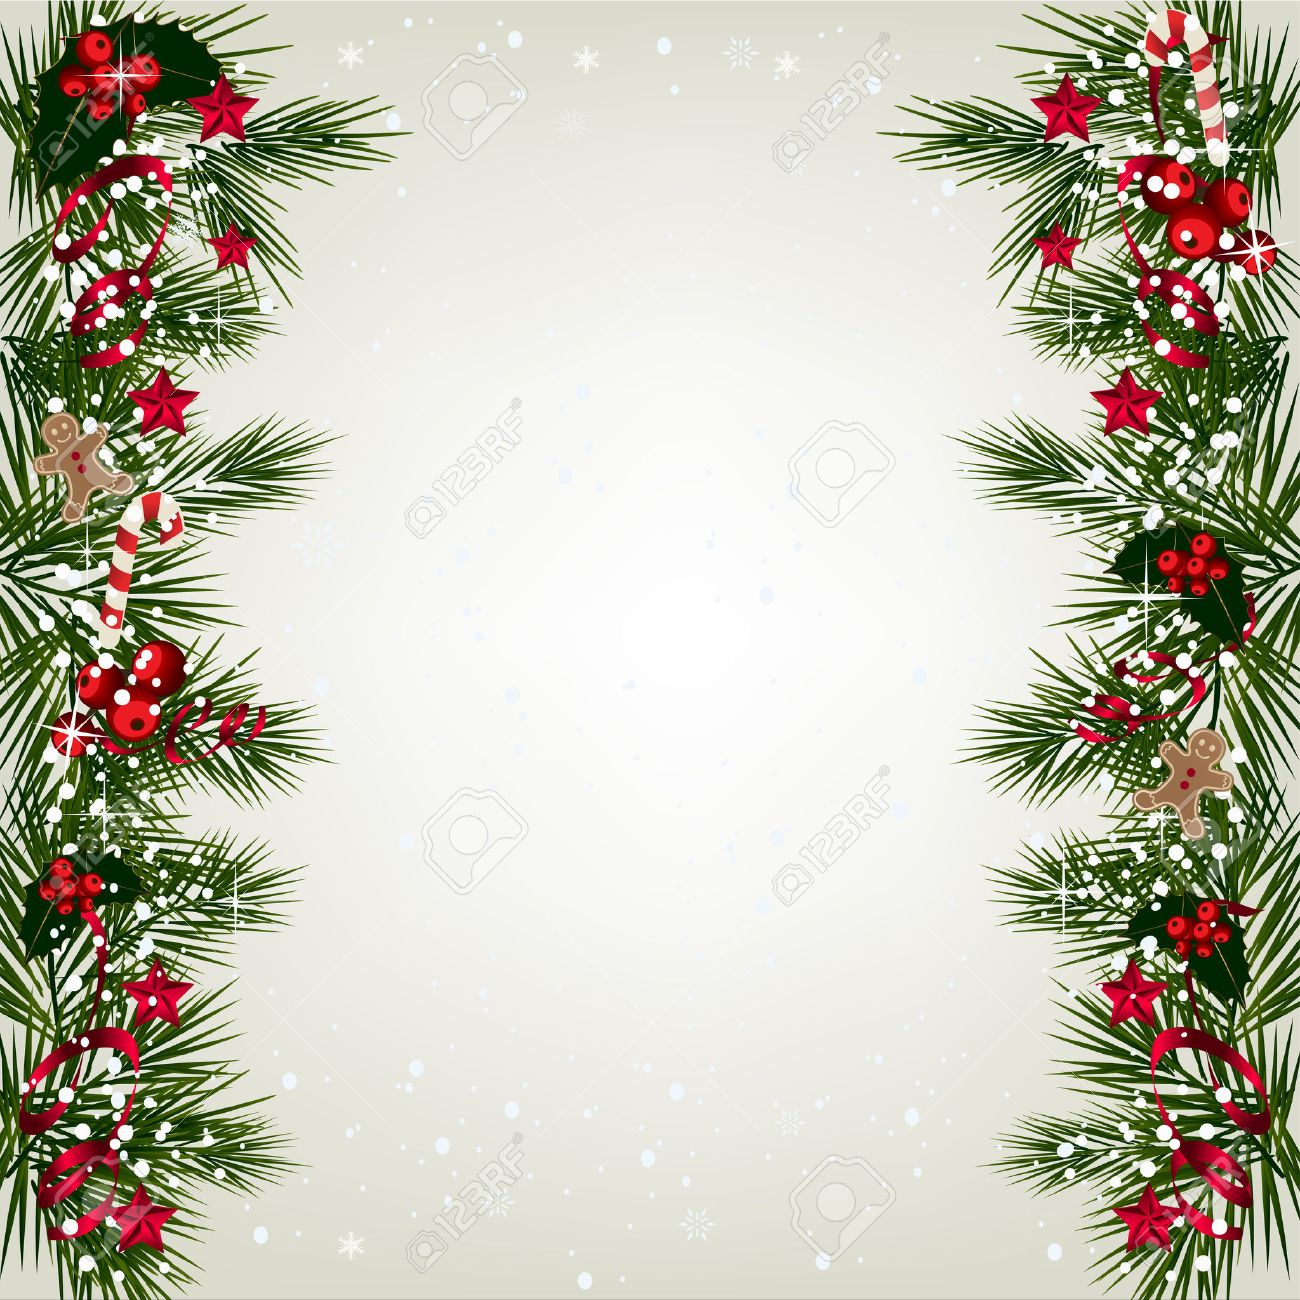 Christmas Branch Tree.Christmas Background With Tree Branch Border With Berry And Ribbon